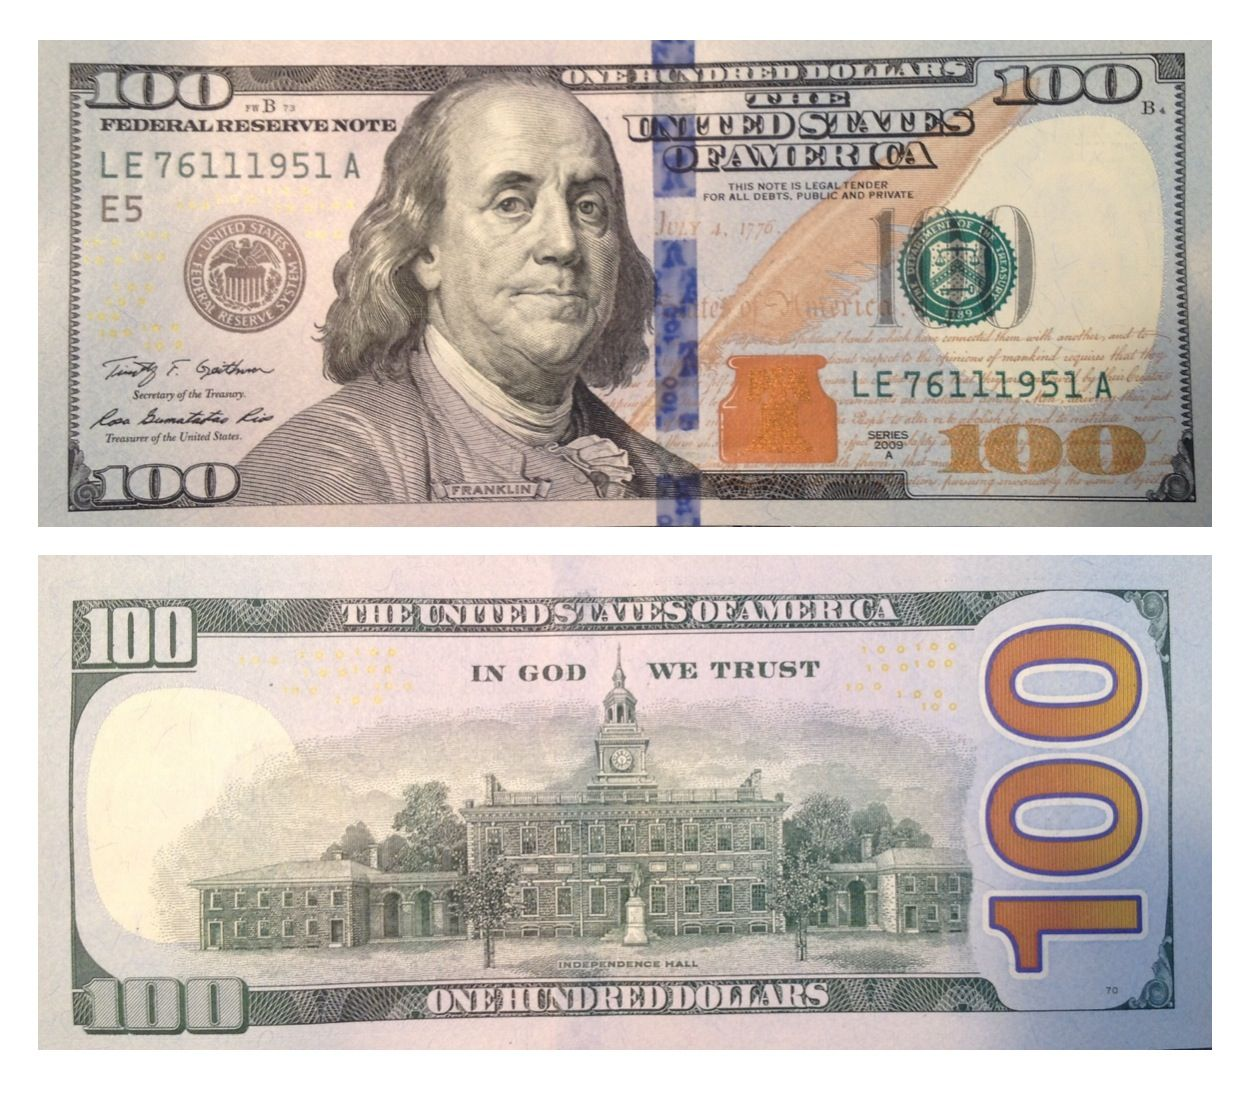 New 100 Dollar Bill Fake Proof